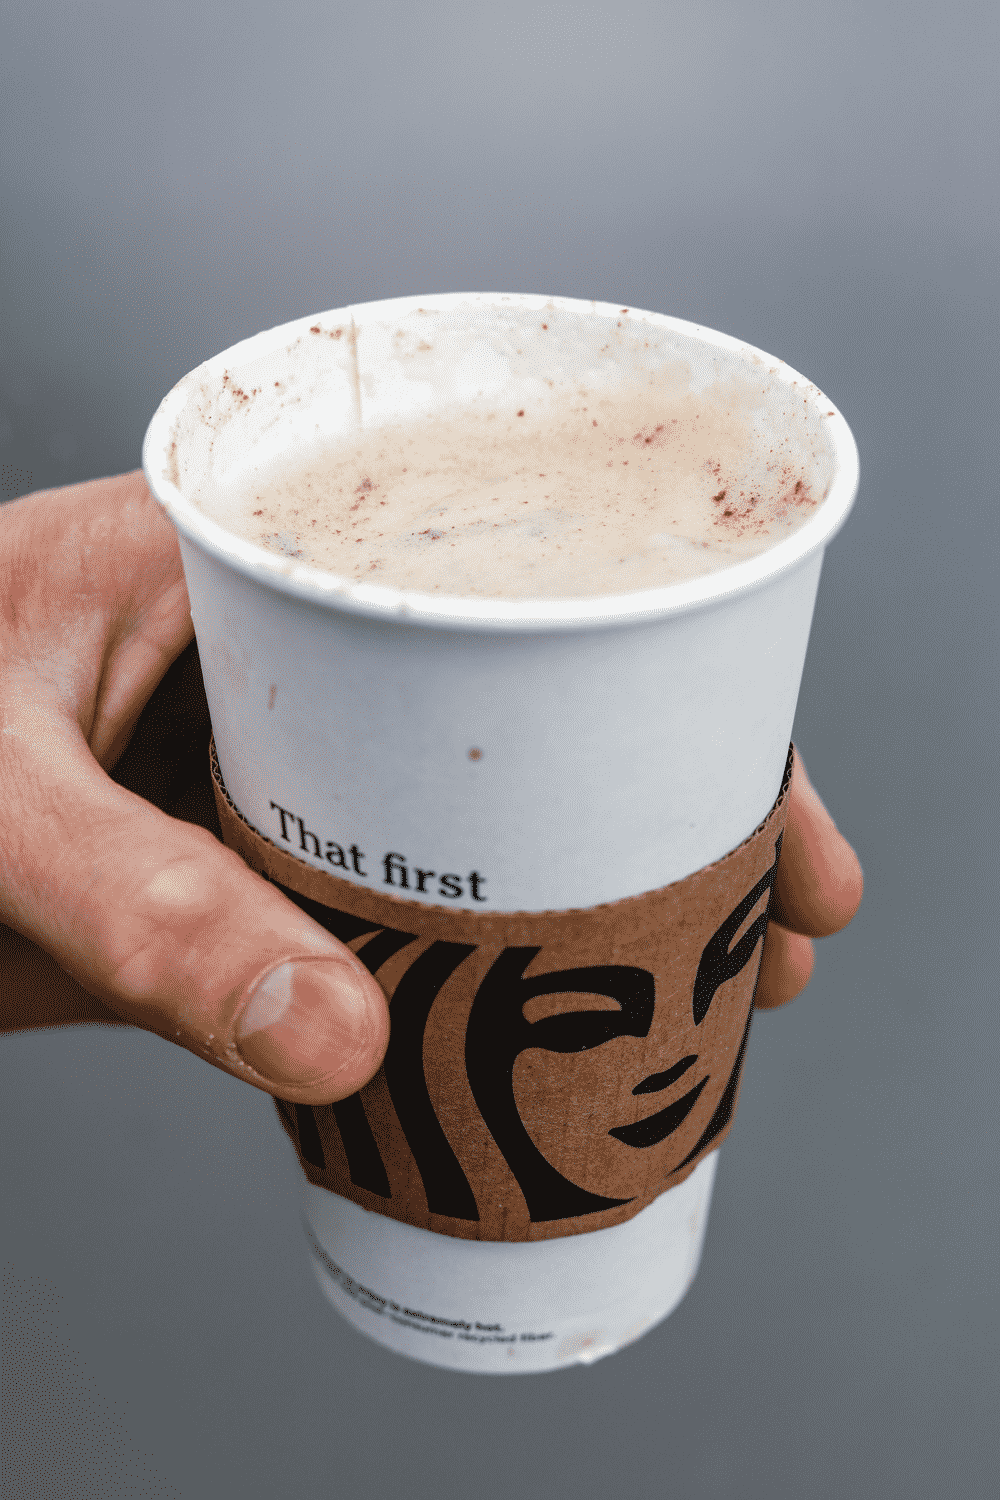 A hand holding a cup of Starbucks keto cinnamon dolce latte.